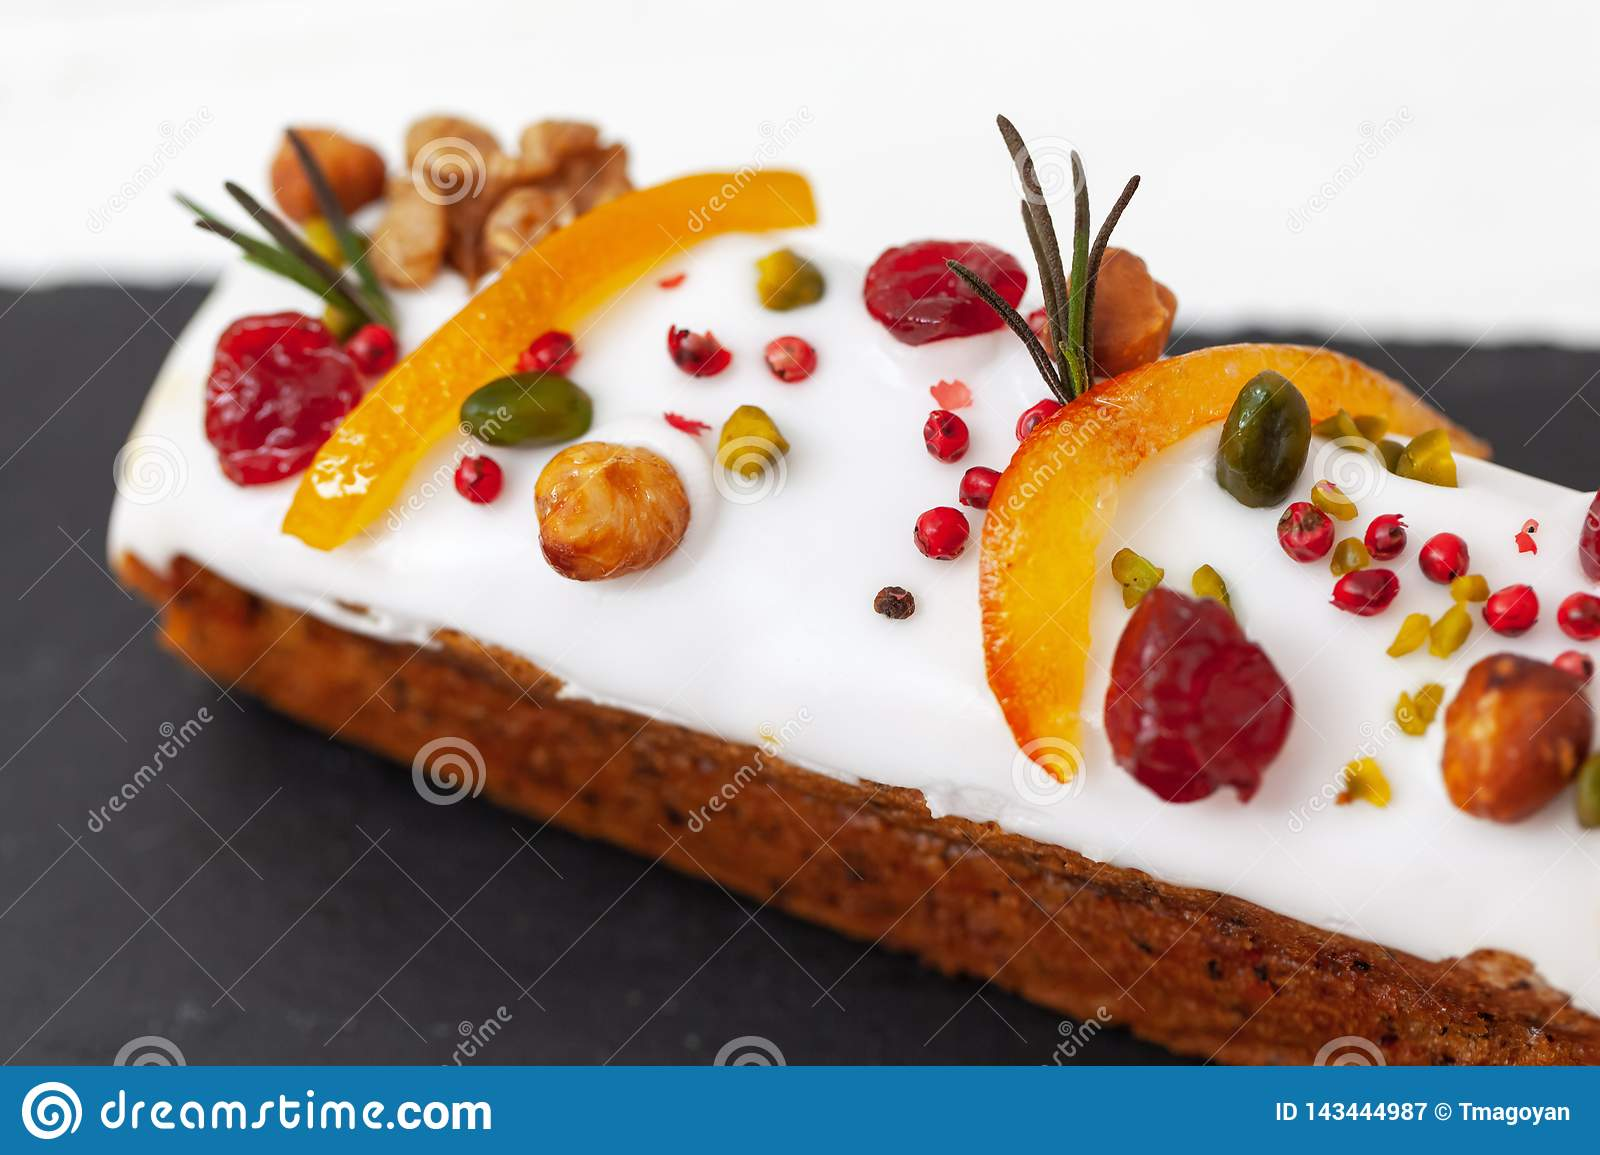 Creative Easter cake with nuts, dried fruits, candied fruit and spices. Happy Easter concept. Close-up. Macro. Selective focus